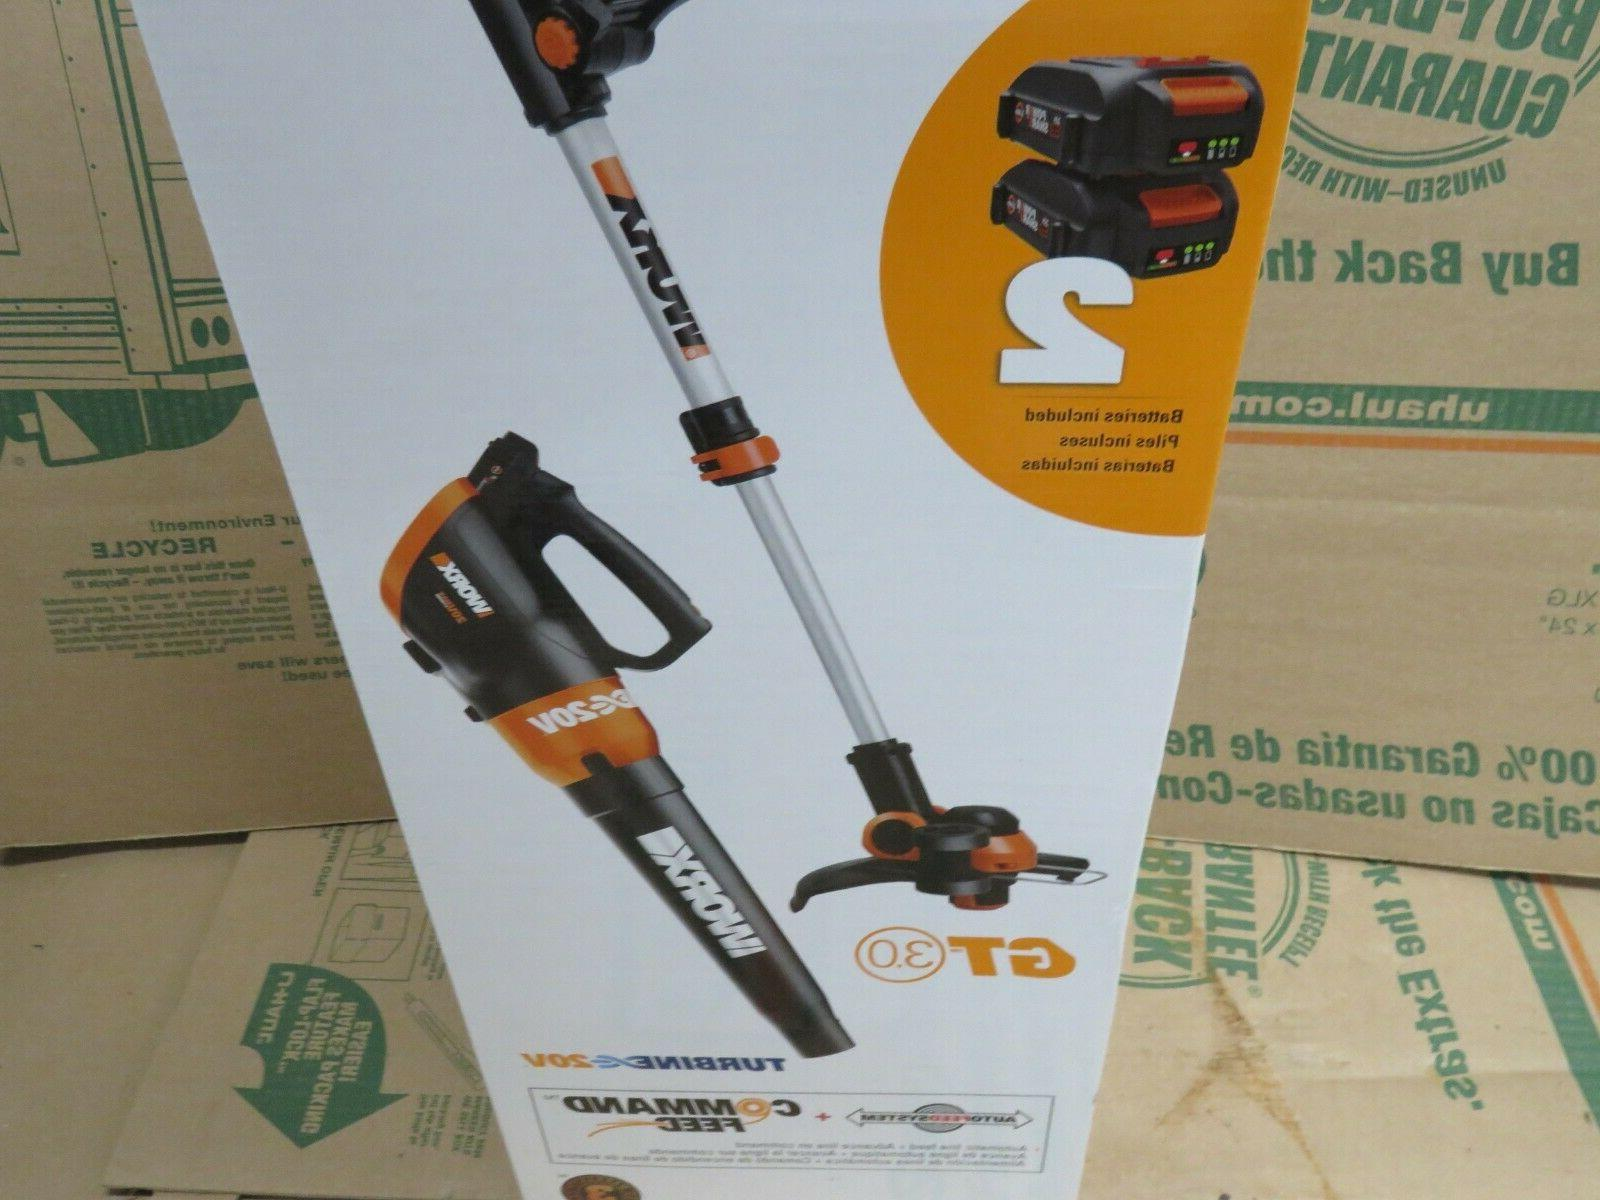 WORX WG921 PowerShare Grass Trimmer Edger & Leaf with Batteries